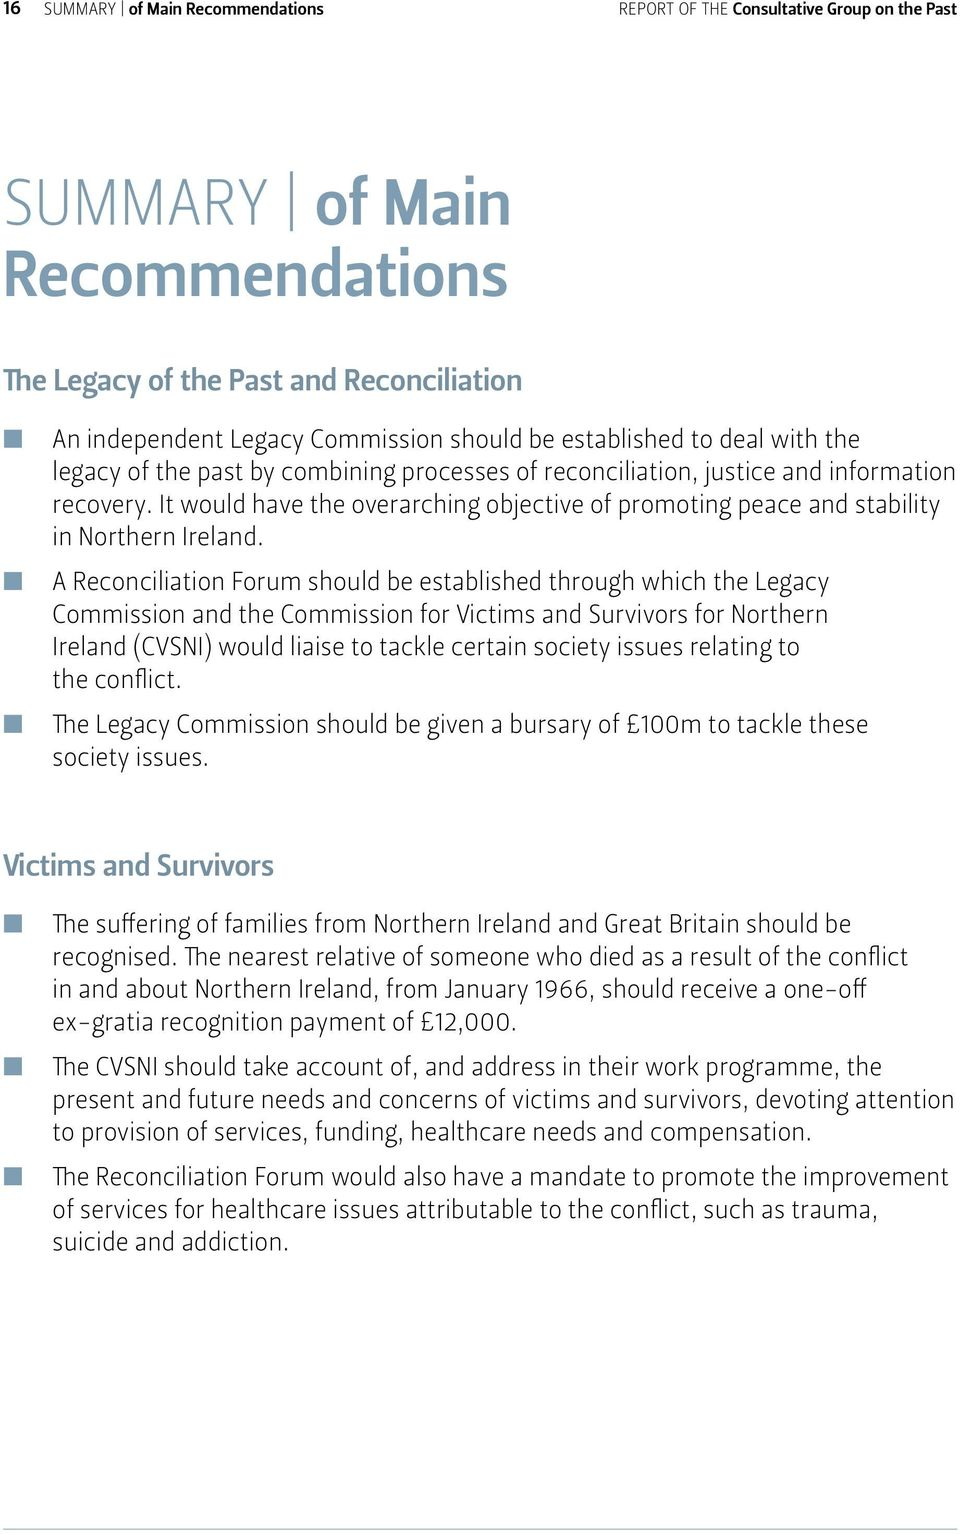 A Recociliatio Forum should be established through which the Legacy Commissio ad the Commissio for Victims ad Survivors for Norther Irelad (CVSNI) would liaise to tackle certai society issues relatig